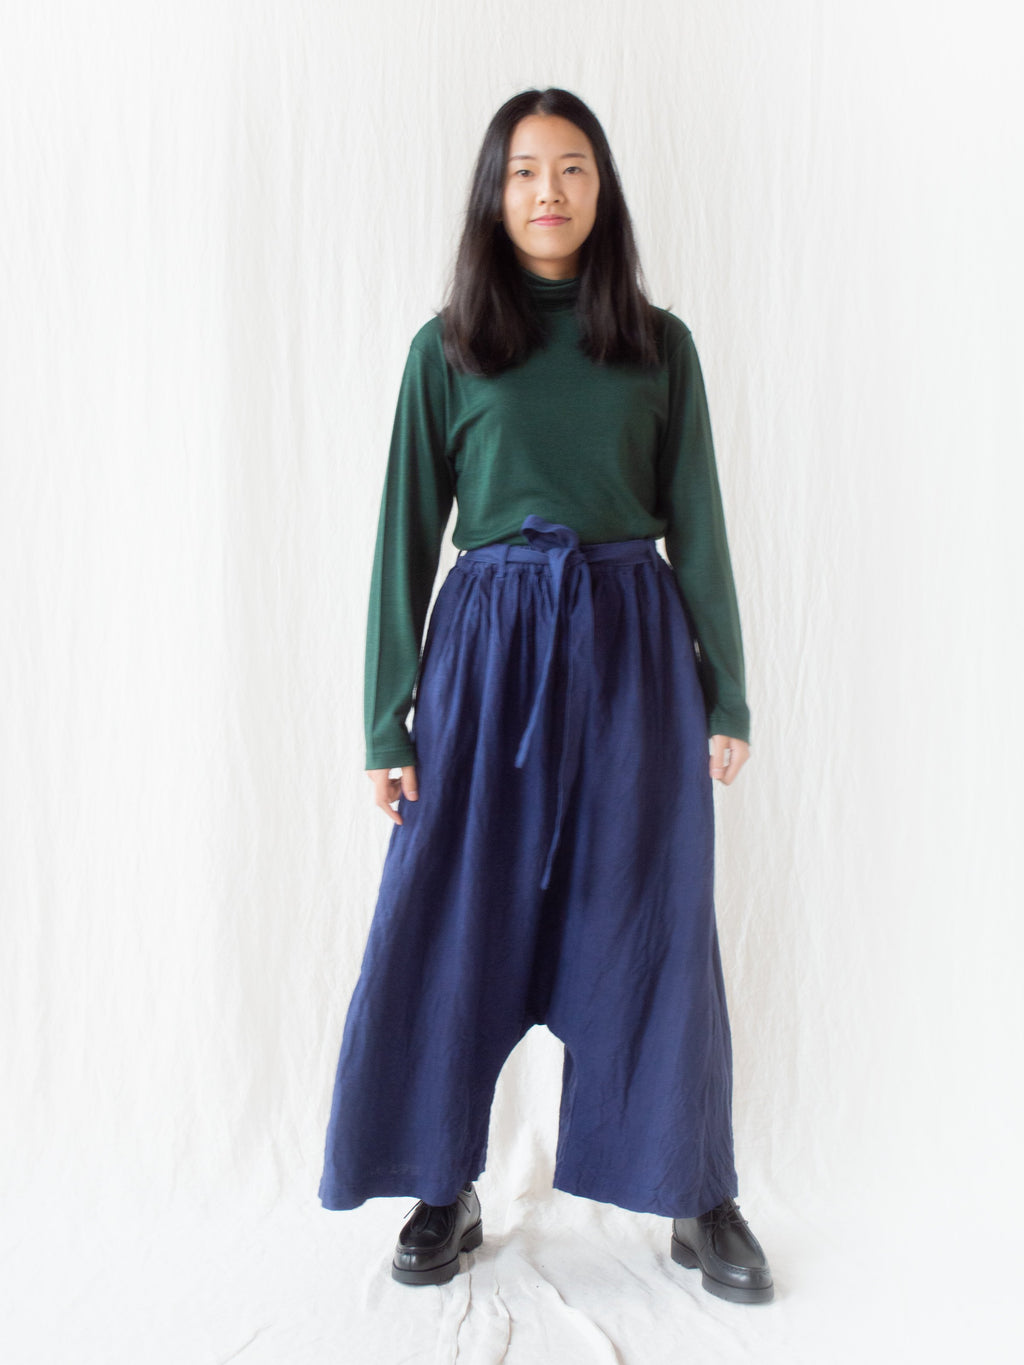 Namu Shop - Ichi Antiquites KOTOHIRADAKI Linen Pants - Blue Navy